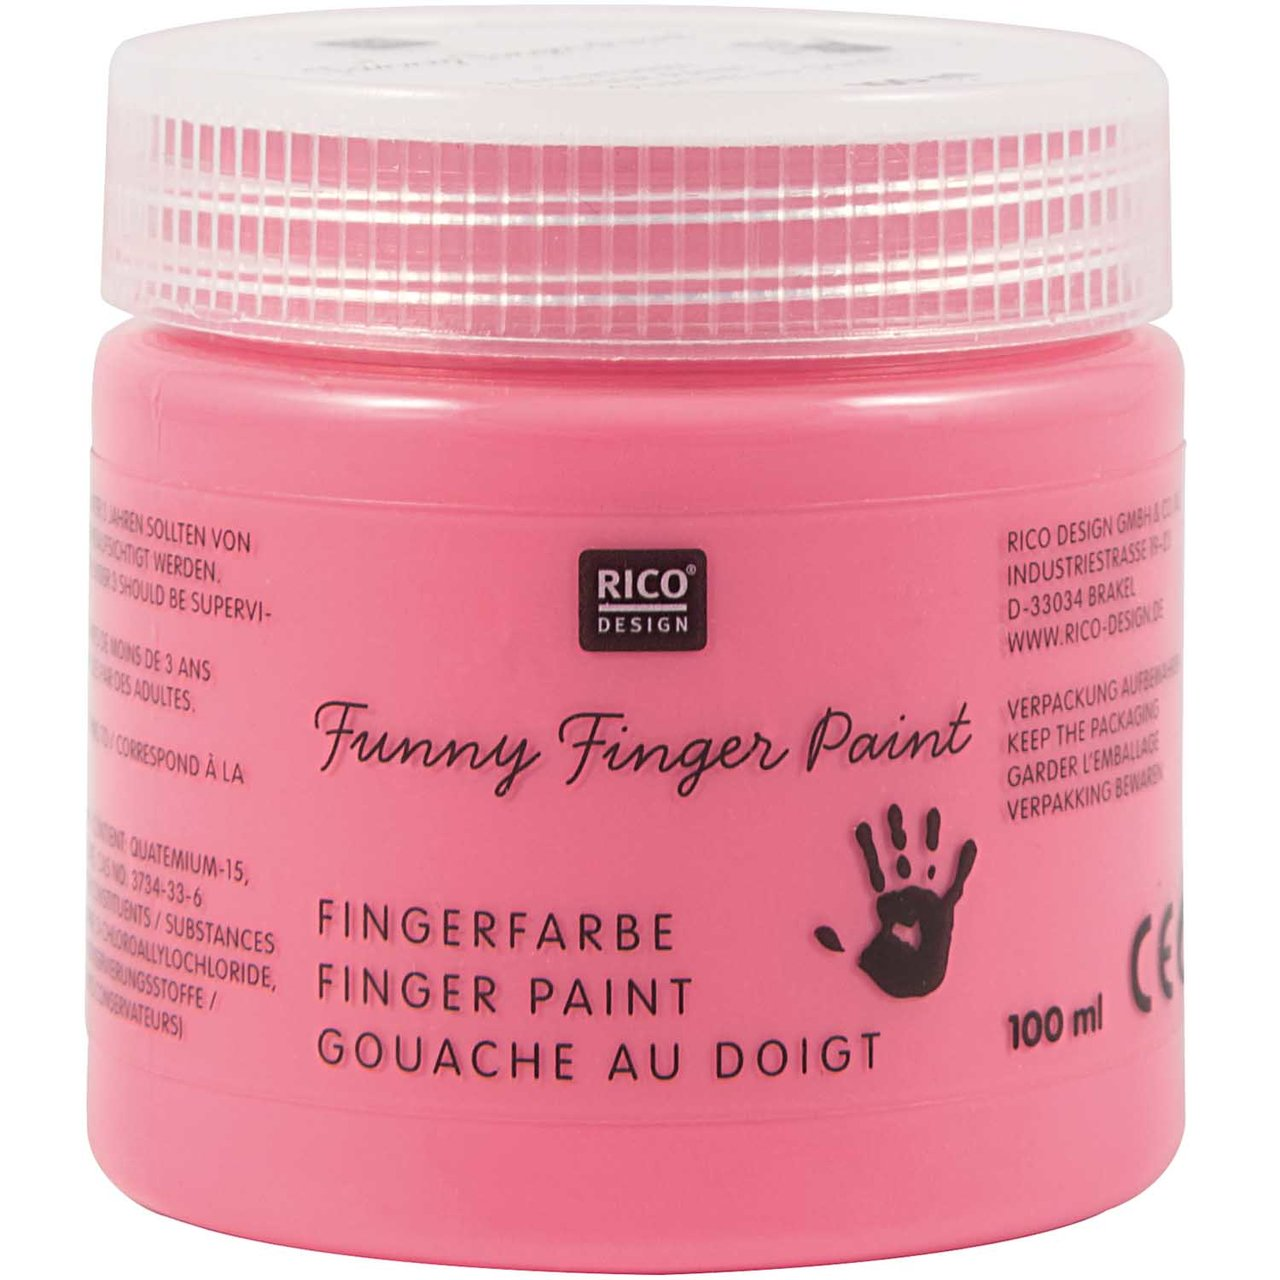 Rico Design Fingerfarbe 100ml pink von Rico Design